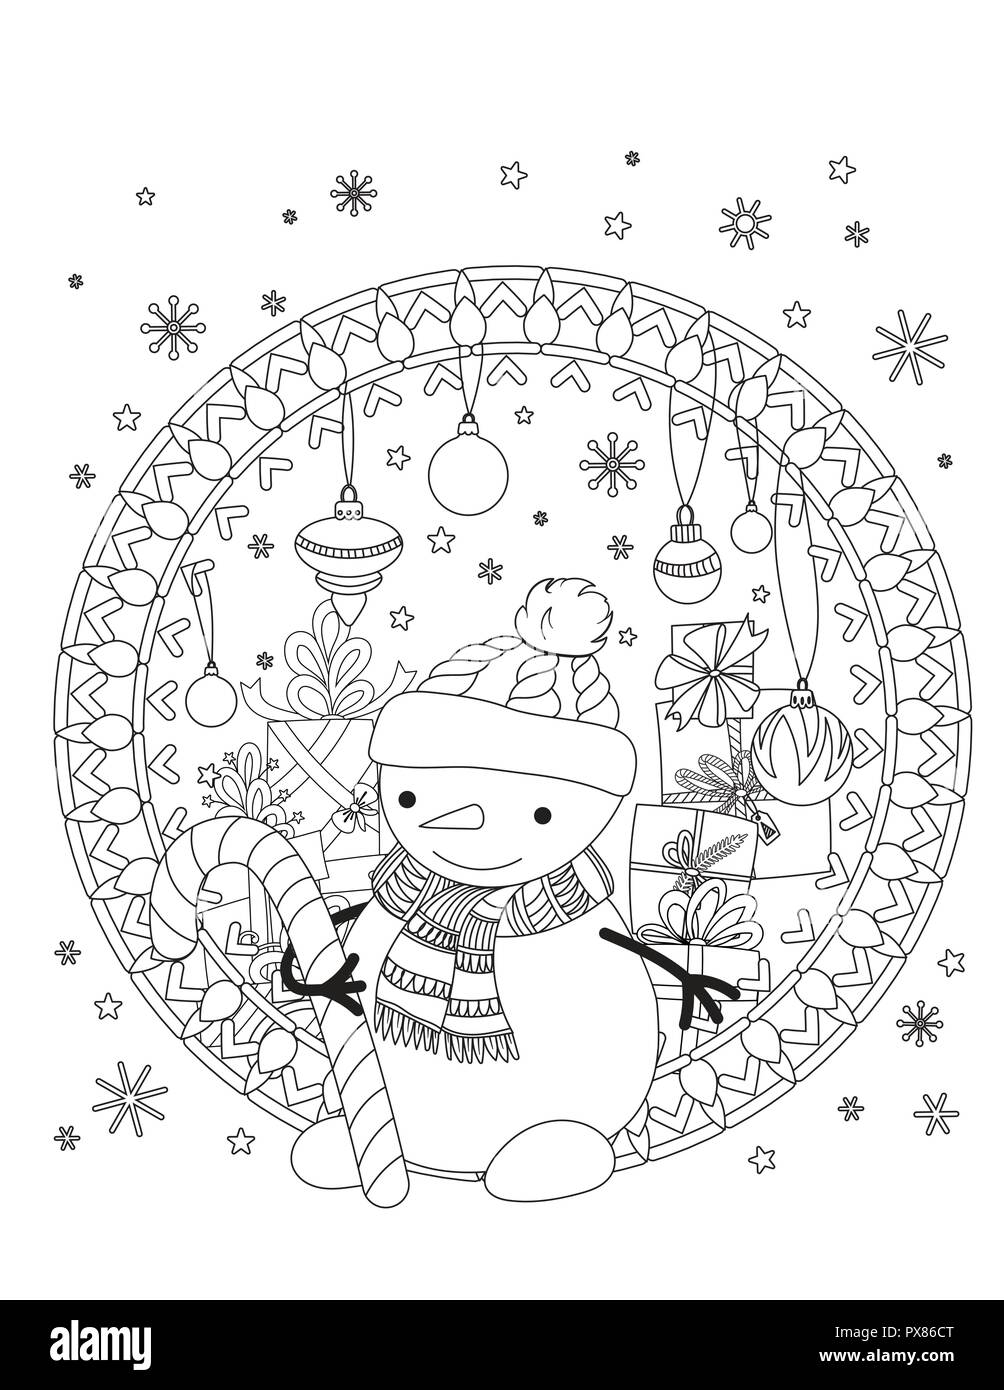 Free Printable Snowman Coloring Pages For Kids | 1390x1004